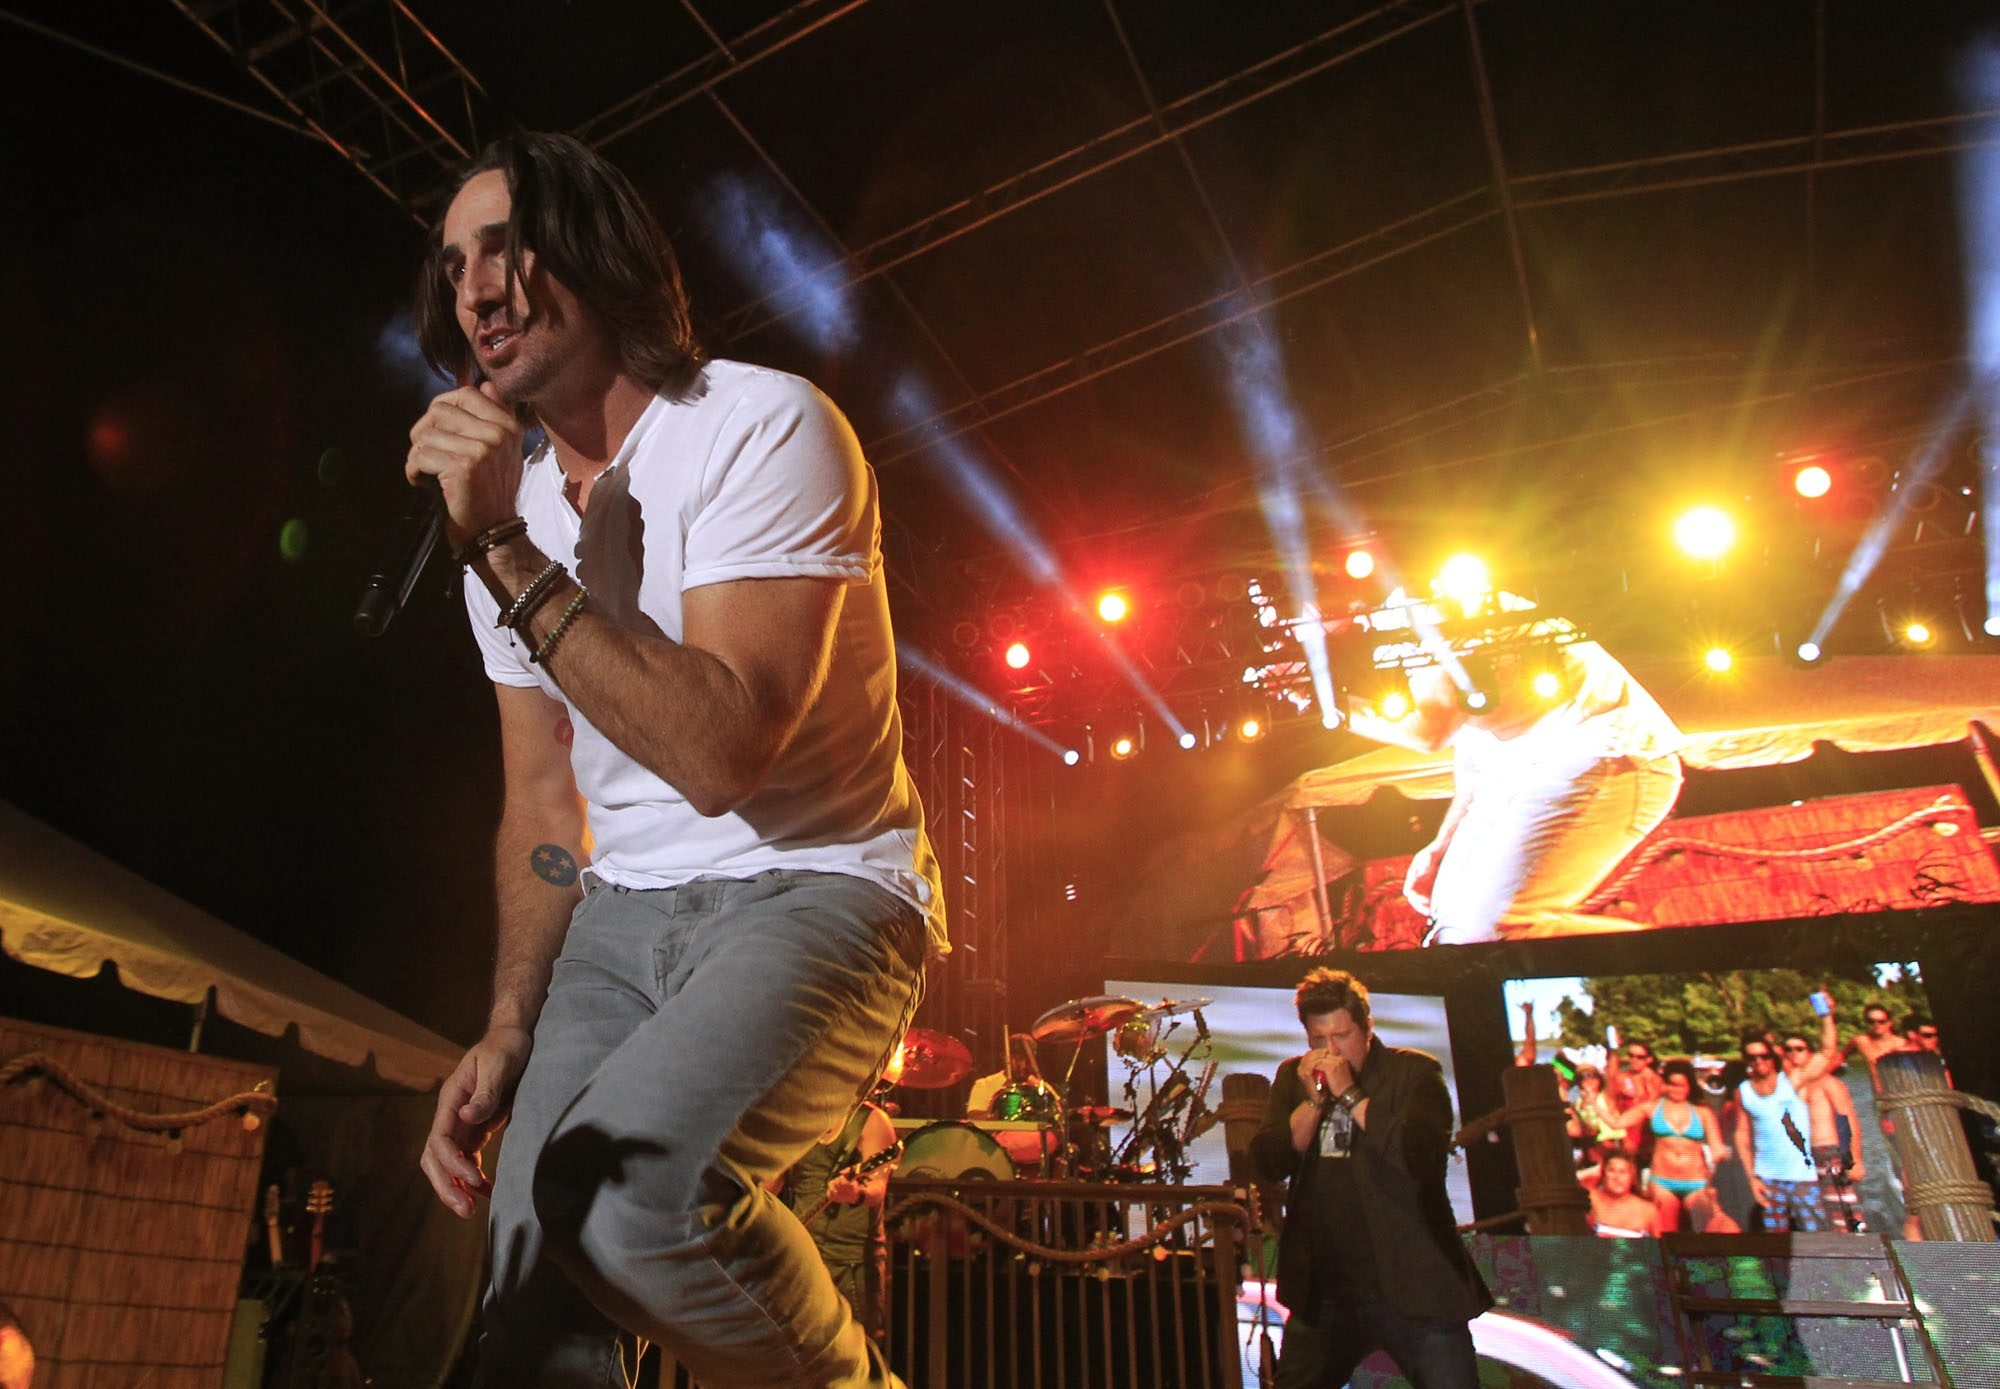 Headliner Jake Owen, top, performs at Taste of Country on Friday at Coca-Cola Field. Above left, Eddie Montgomery of Montgomery Gentry sings during that band's set; fans, center, watch the show; and Jaren Johnston, singer and guitarist of the Cadillac Three performs.